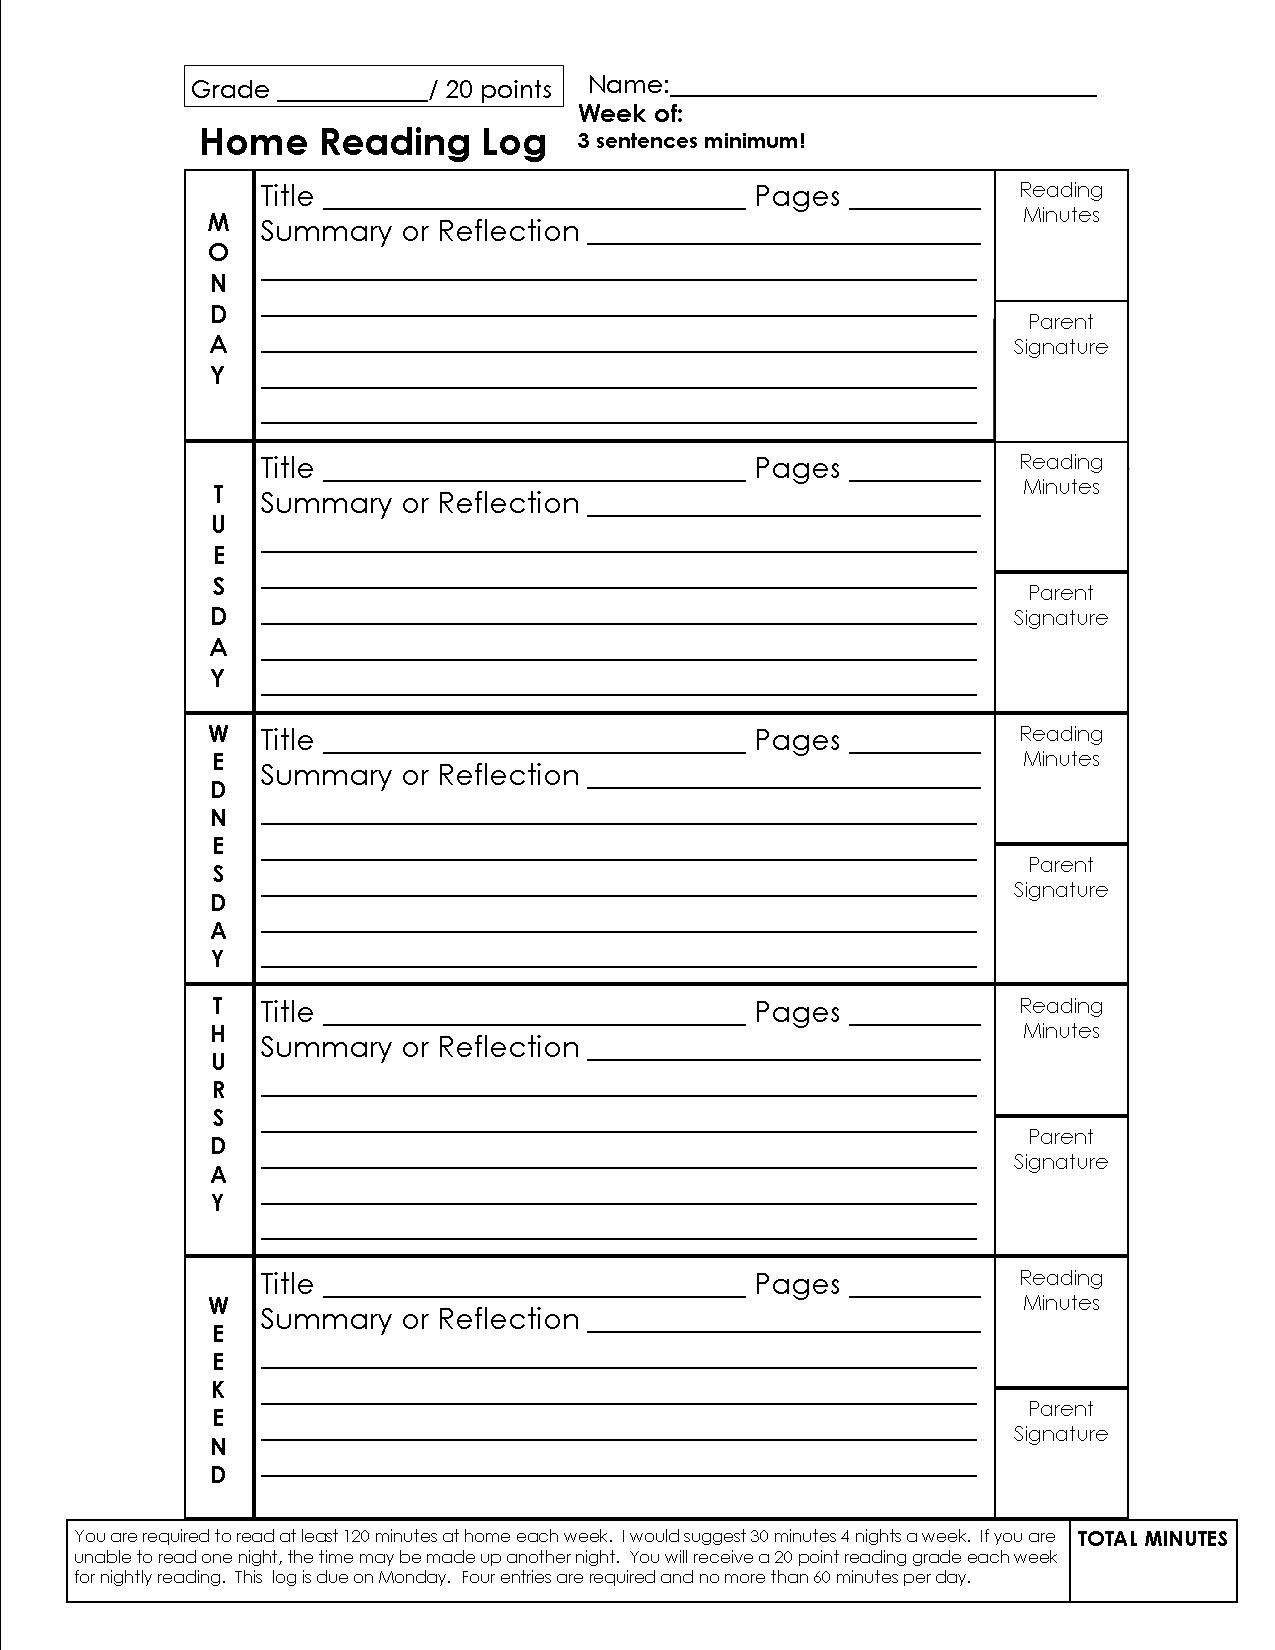 Worksheet Reading For Fifth Graders reading response forms for elementary schools logs 5th graders